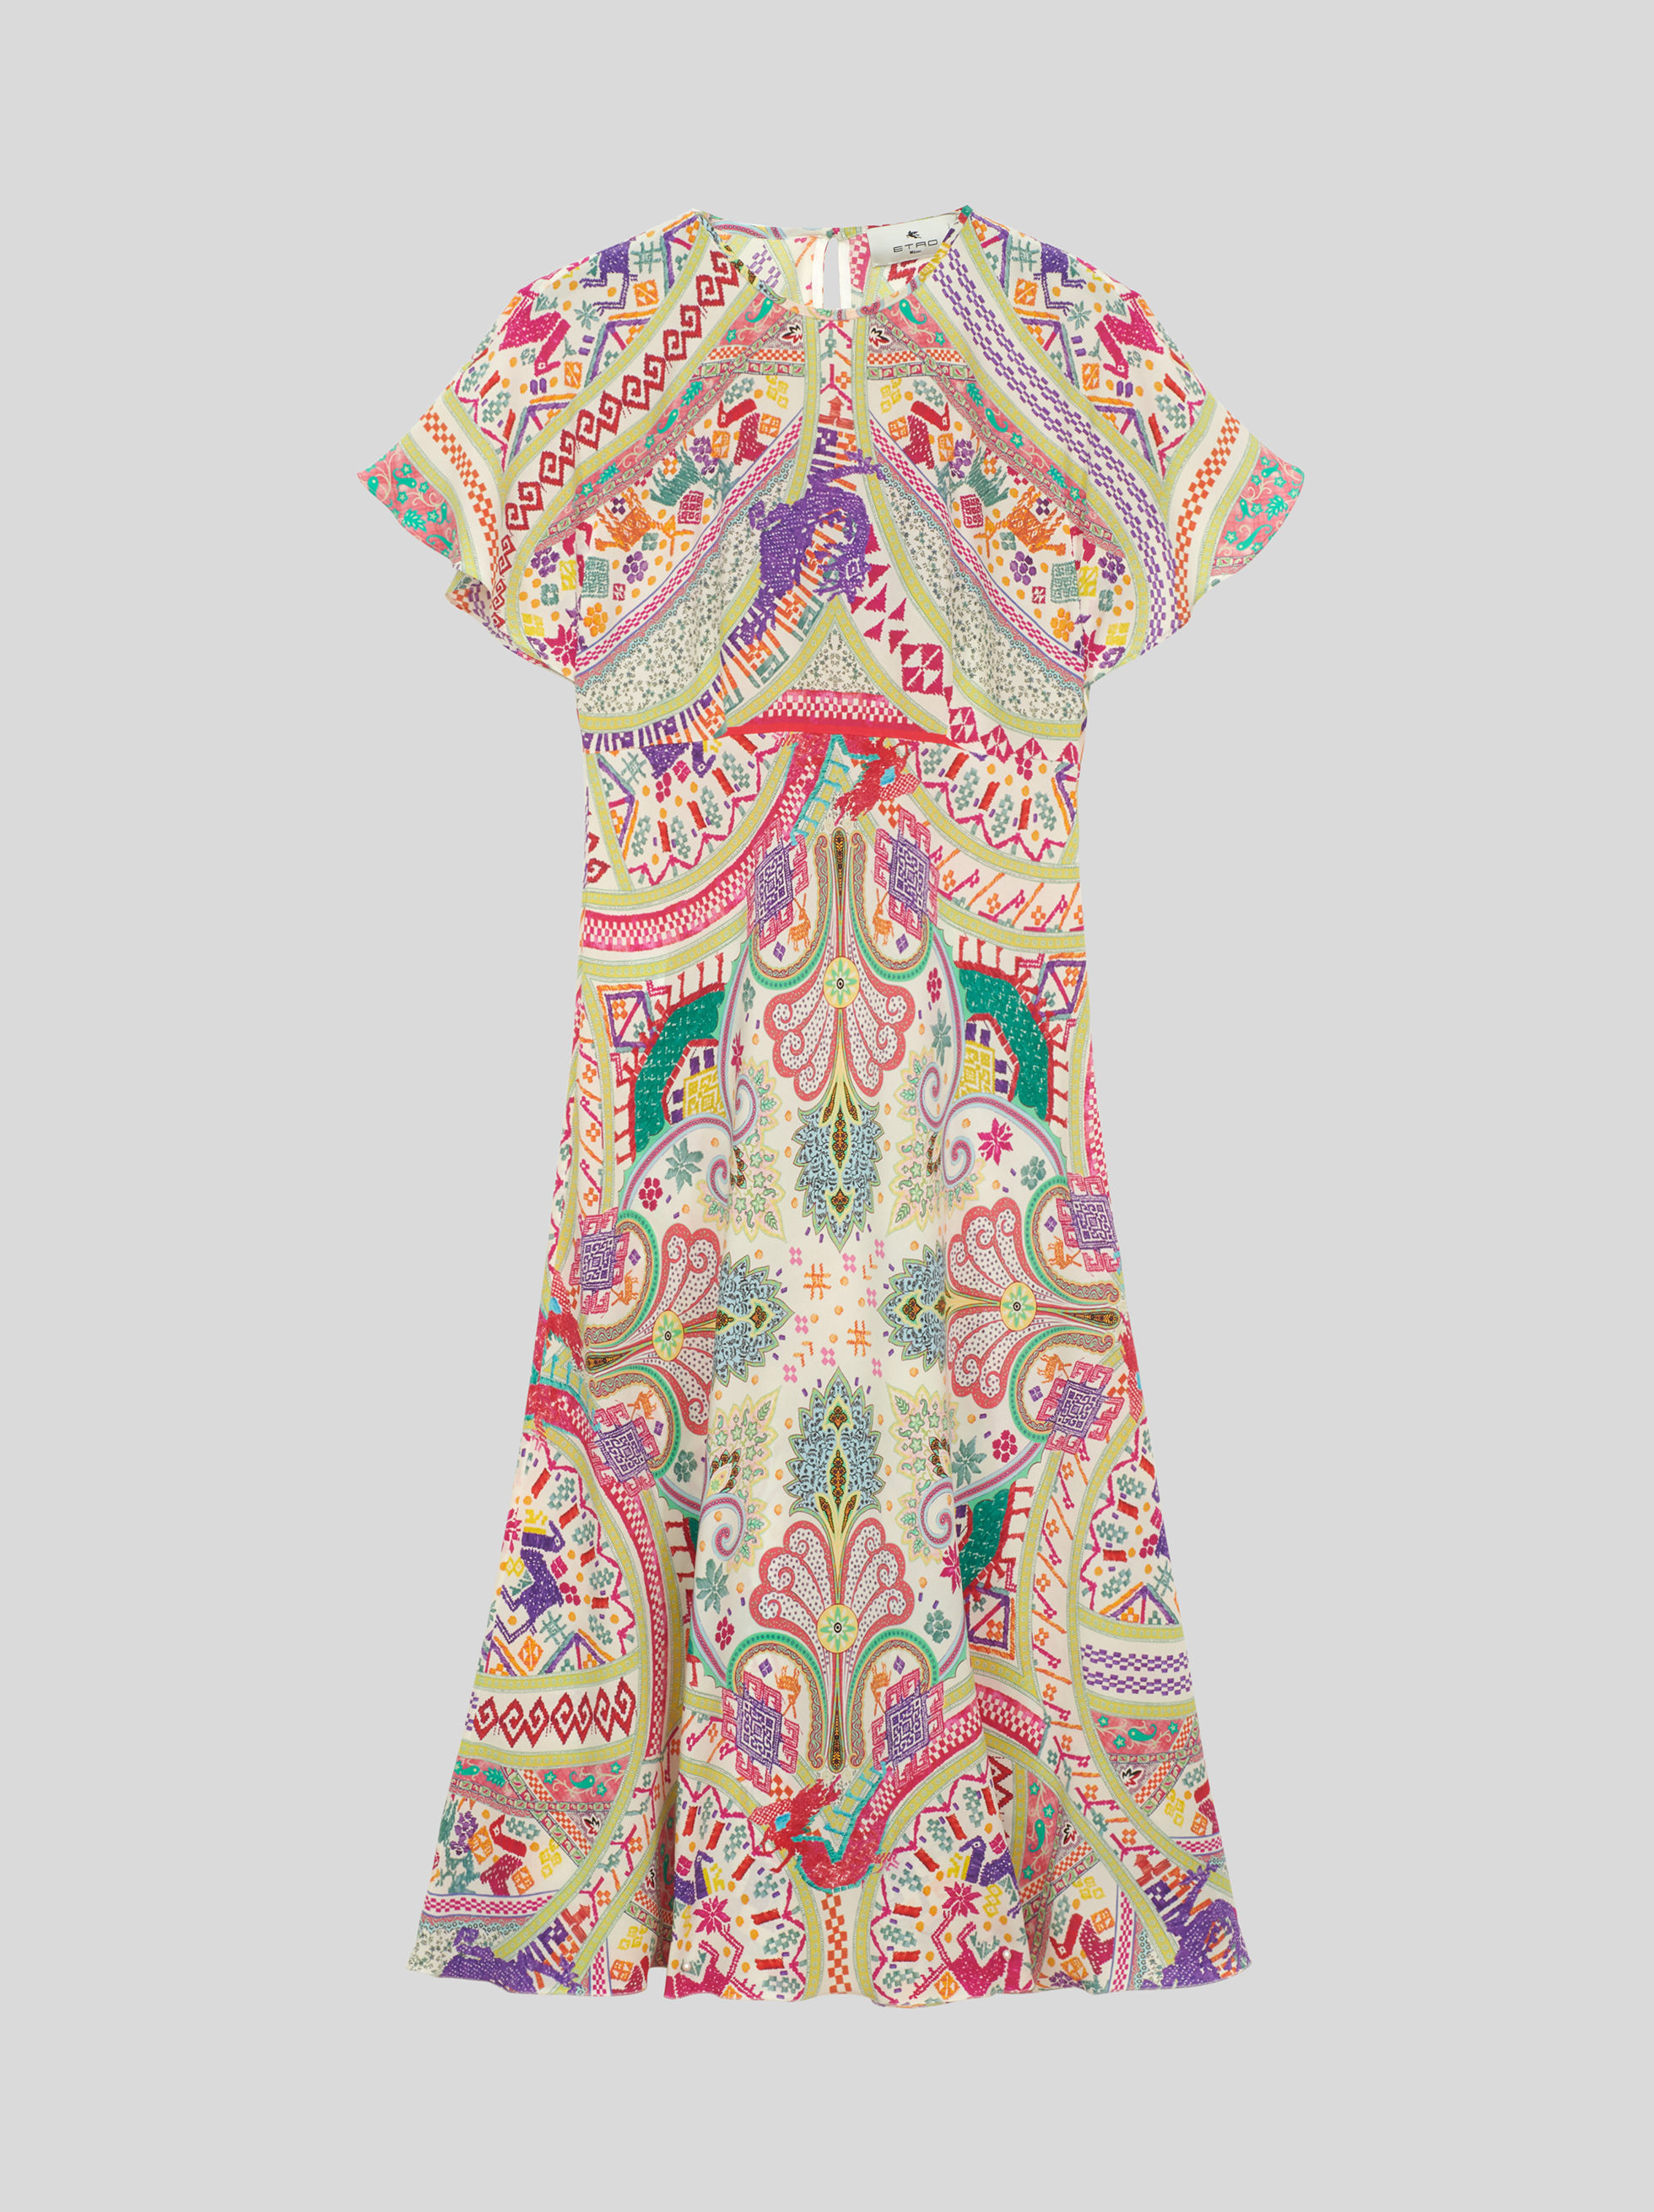 SILK DRESS WITH PAISLEY DESIGNS